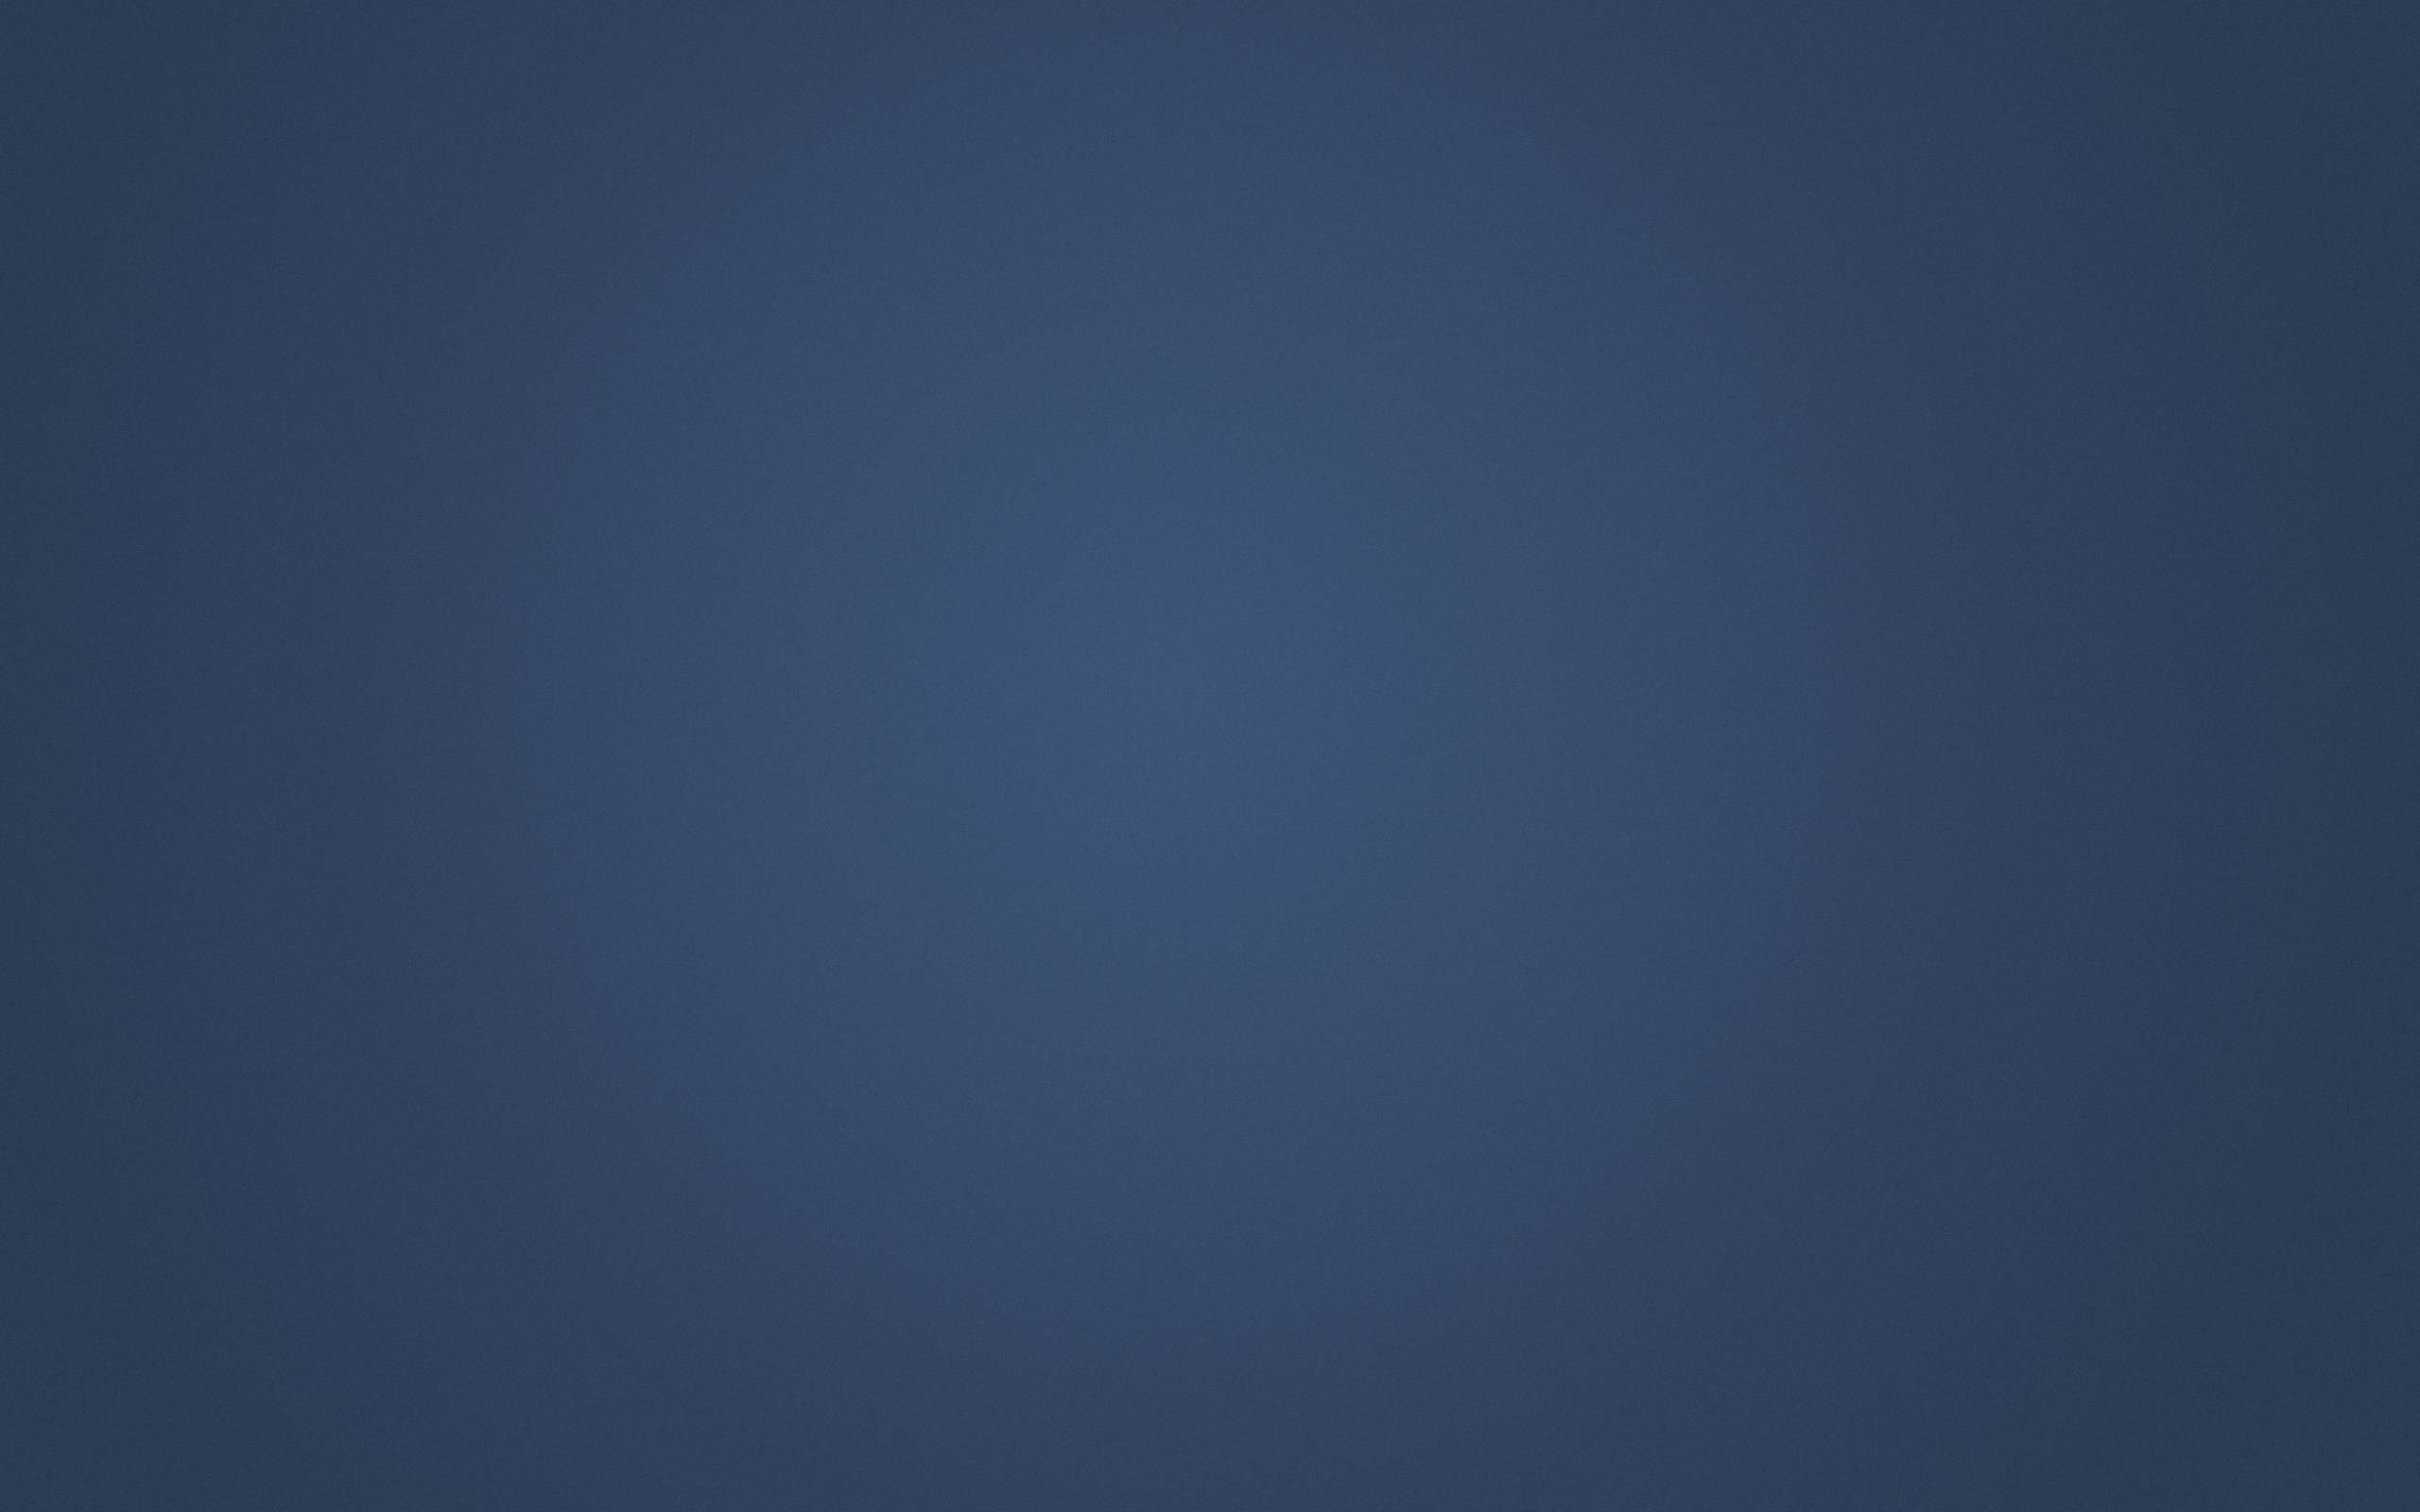 Blue Solid Color Wallpaper ...